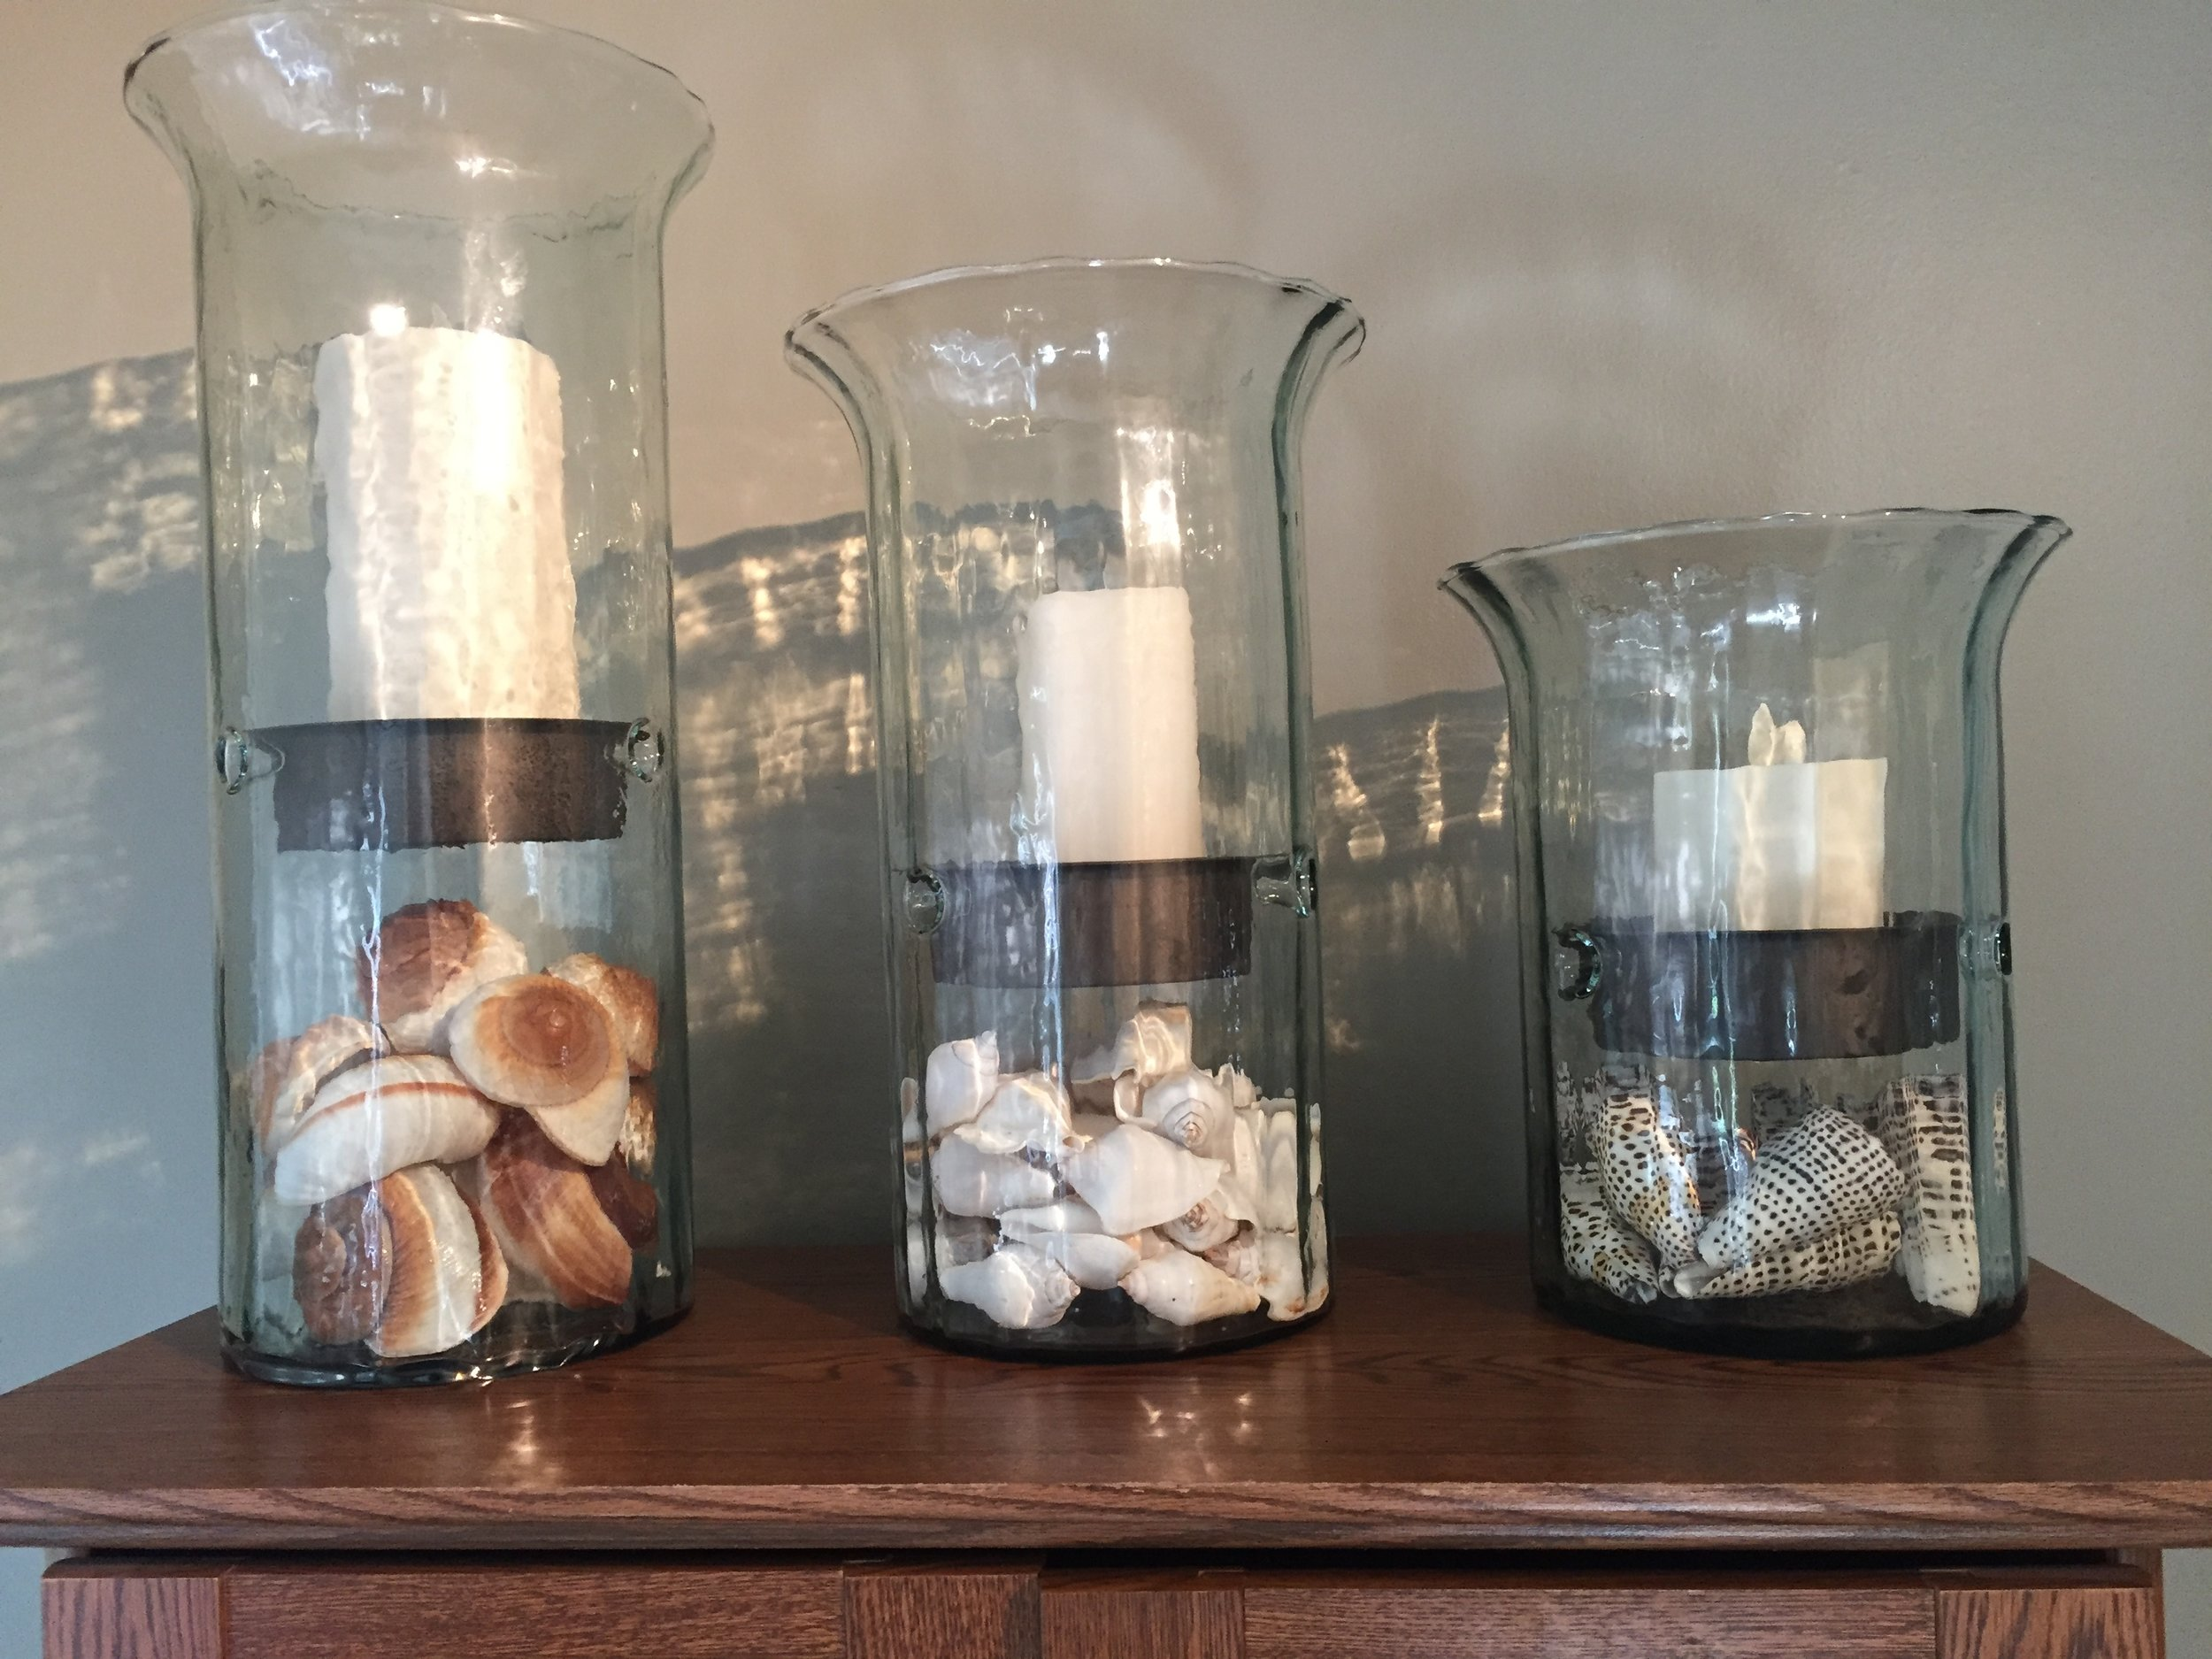 Hurricanes and Lanterns - Hurricanes and Lanterns are very versatile decor pieces. Both come in a variety of styles and sizes, and are easily changed by using different fillers and candles. They are a great basic decor piece with so many affordable choices. The Hurricanes pictured have different types of seashells as fillers for Summer.